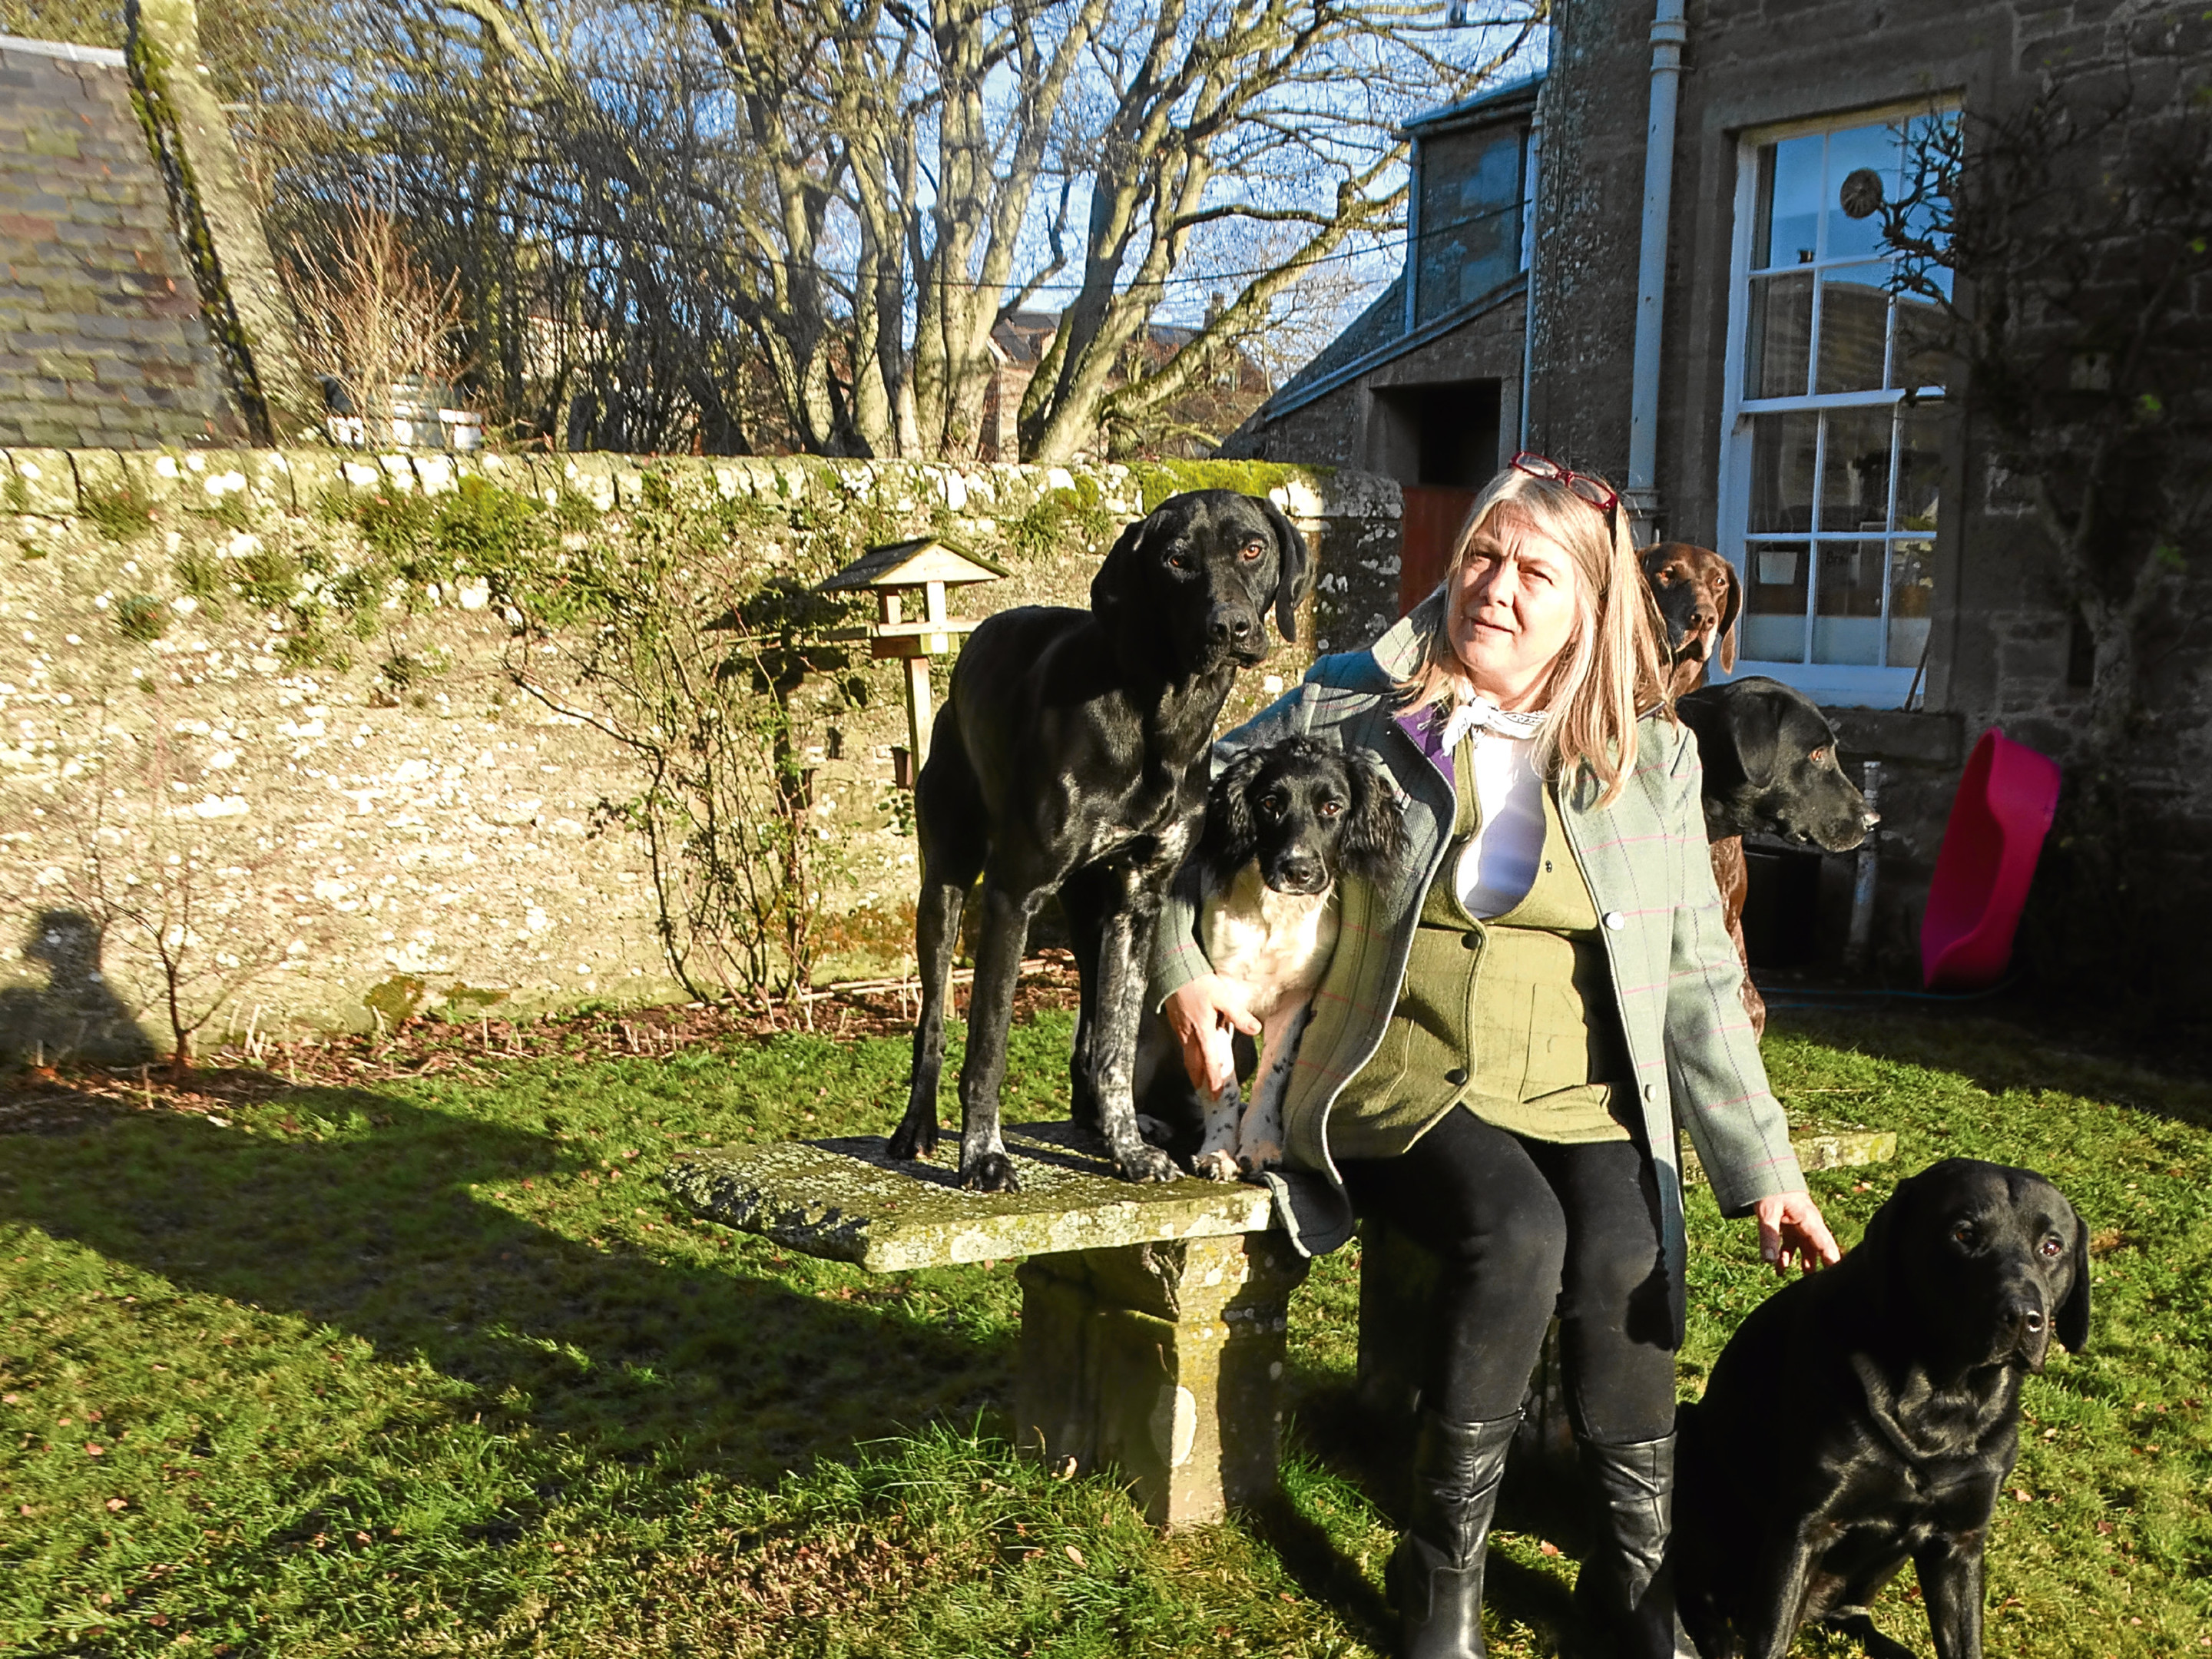 Supplied pic taken by Angus Whitson for his column. Carol Begg with some of her rescue gundogs.